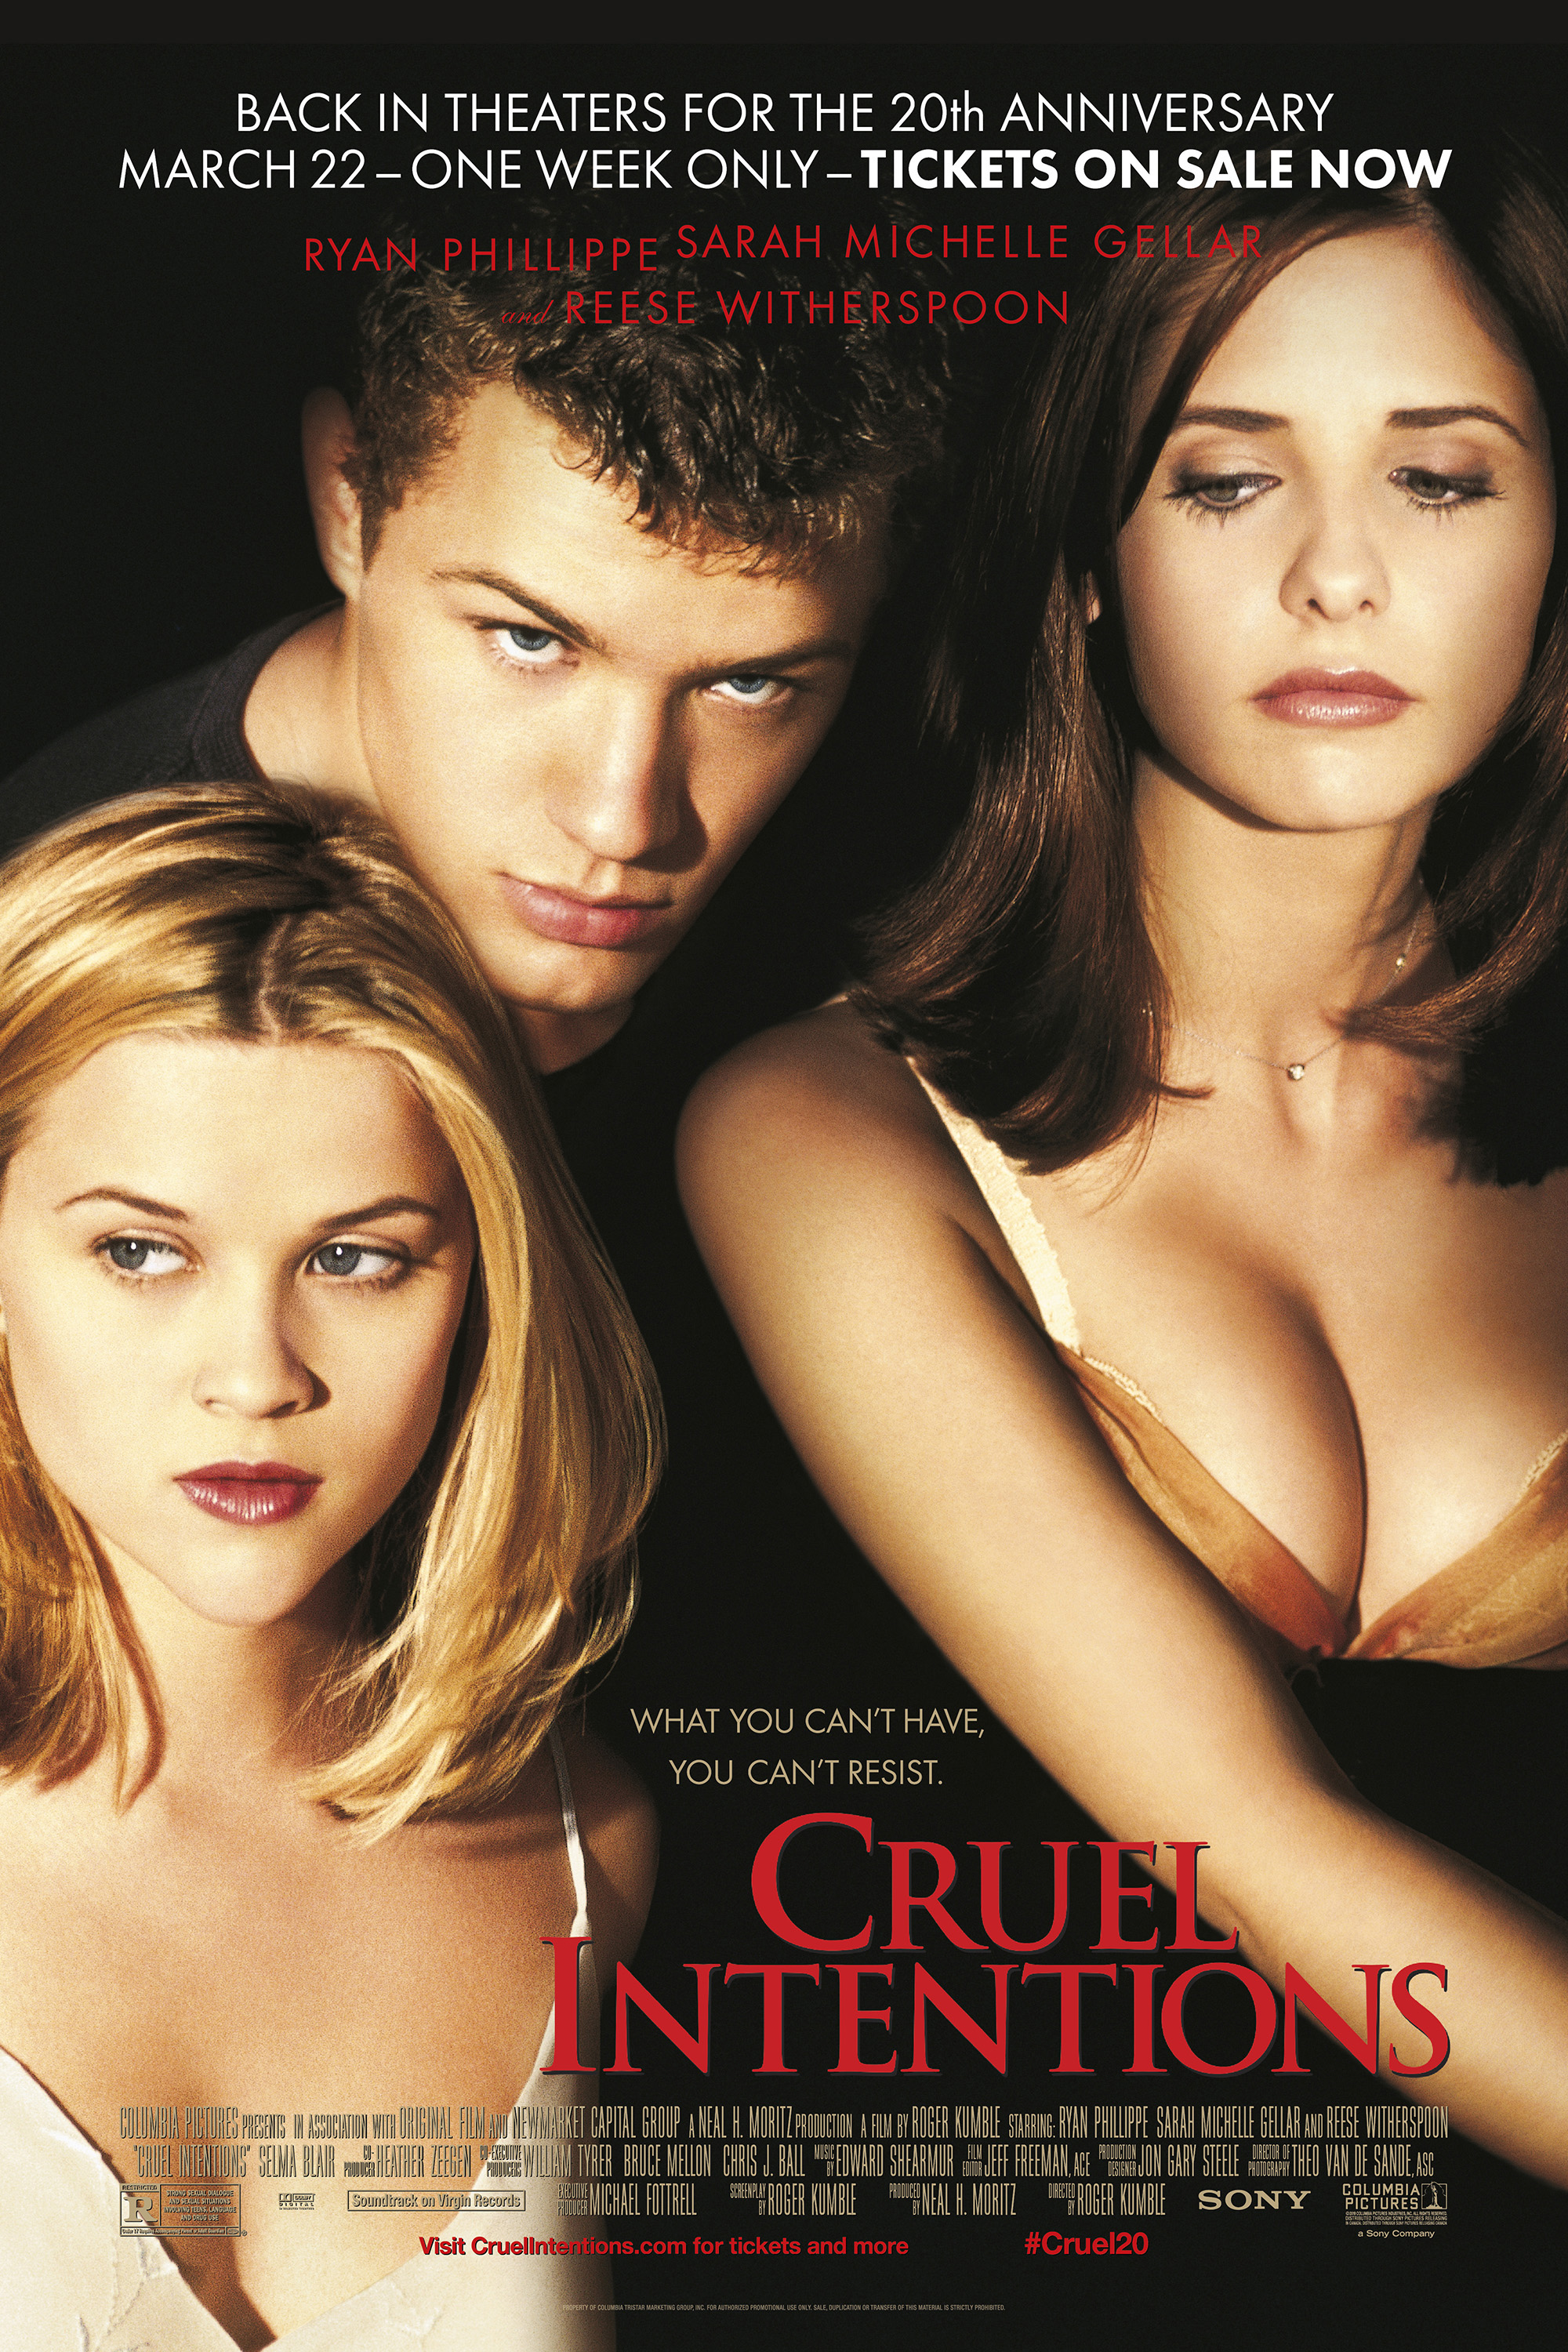 Cruel Intentions 20th Anniversary Poster